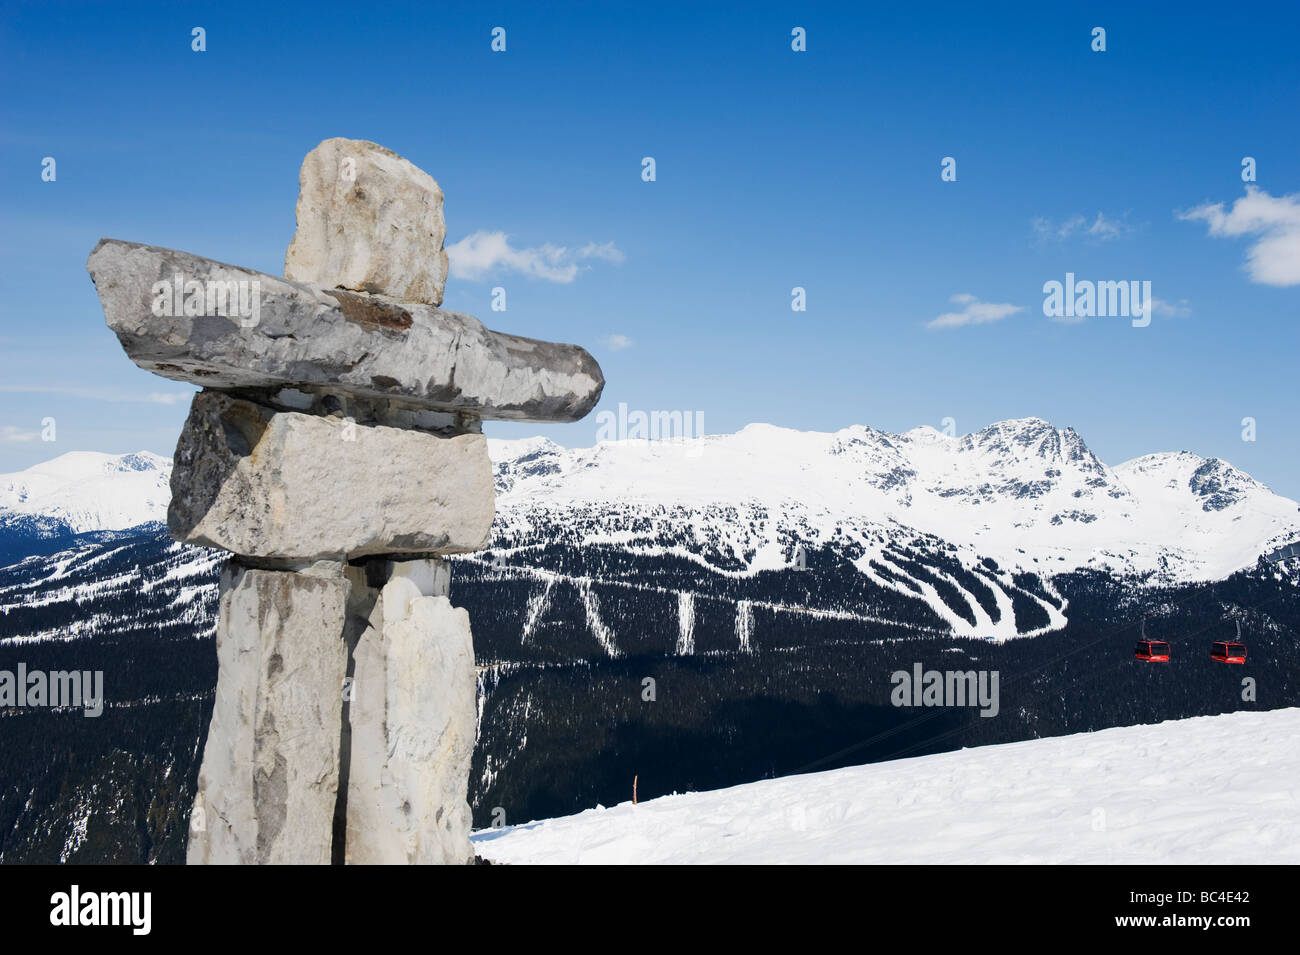 an Inuit Inukshuk stone statue Whistler mountain resort venue of the 2010 Winter Olympic Games - Stock Image